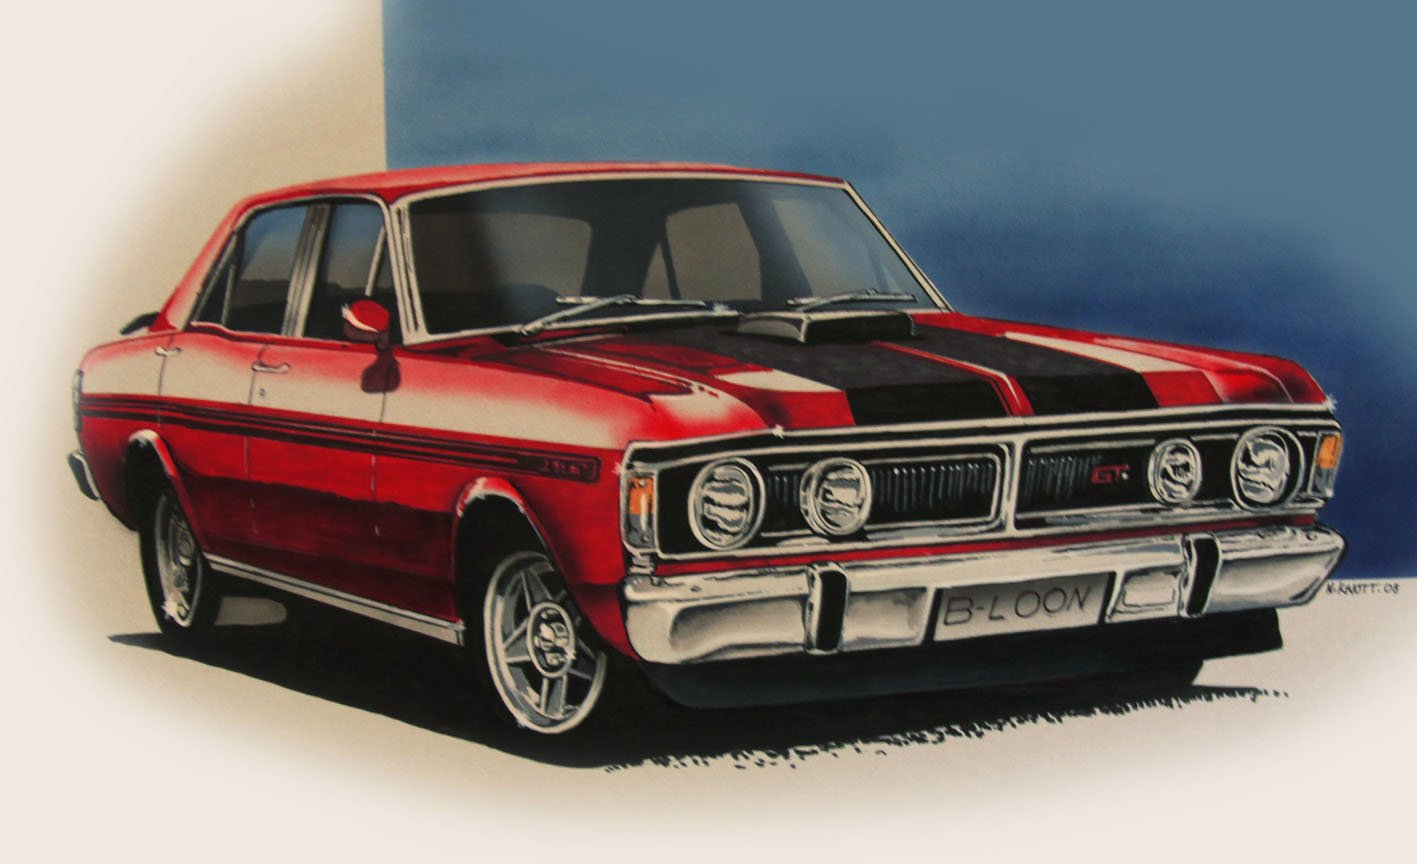 1417x864 - Ford Falcon Wallpapers 14